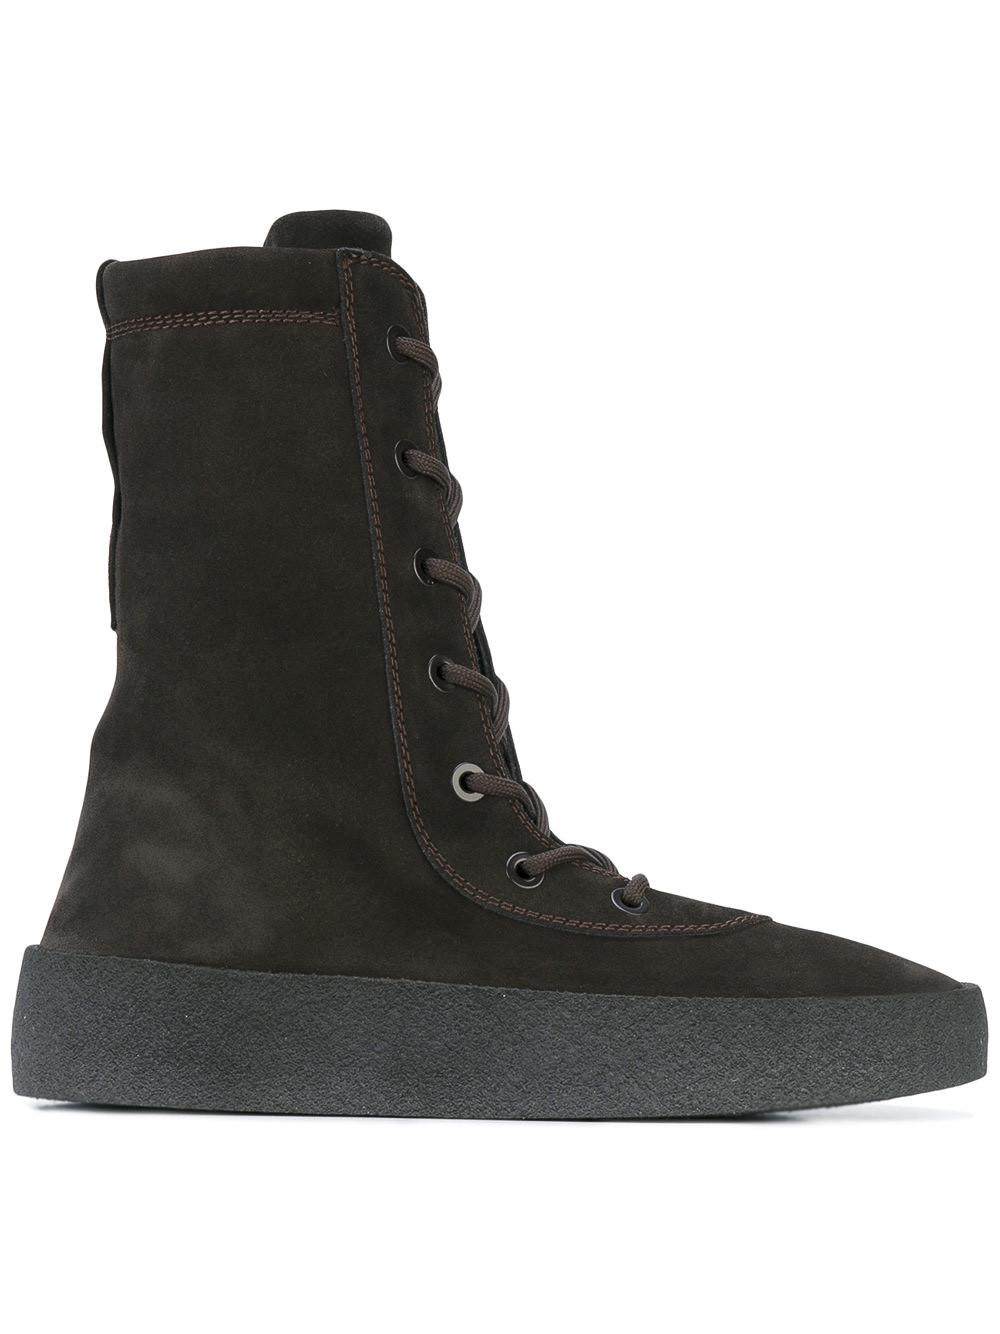 930a088a106d1 Yeezy Suede Crepe Boot in Black for Men - Lyst